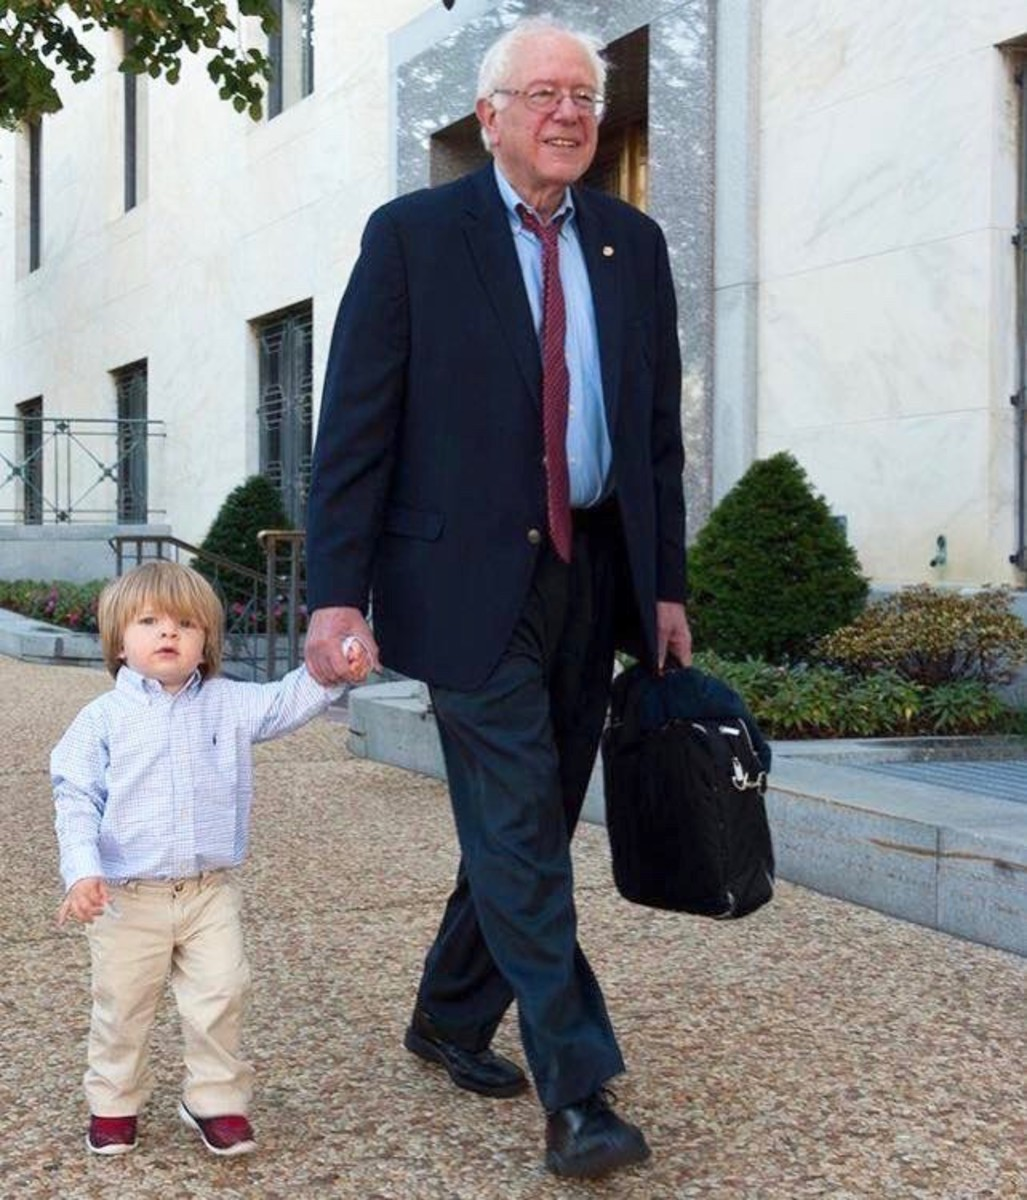 Bernie Sanders walking with one of his seven grandchildren.